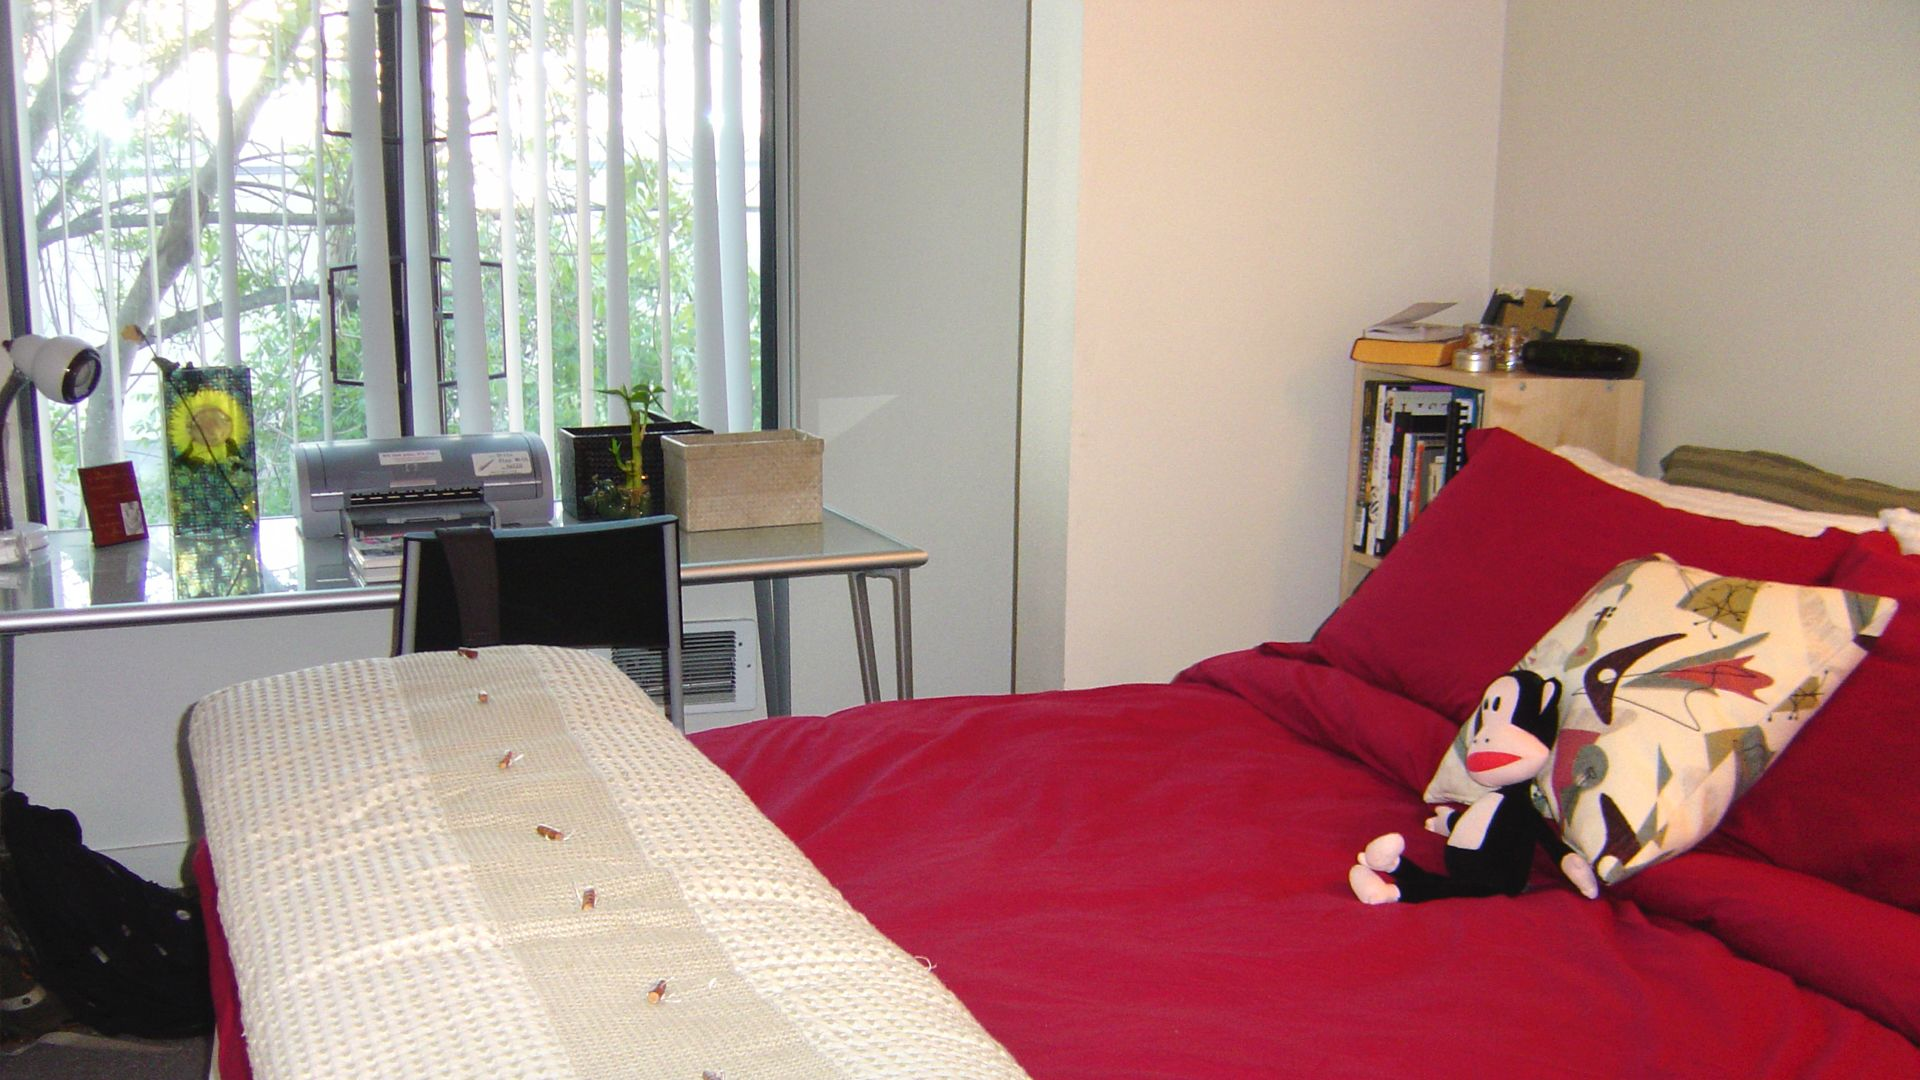 Acton Courtyard Apartments - Bedroom